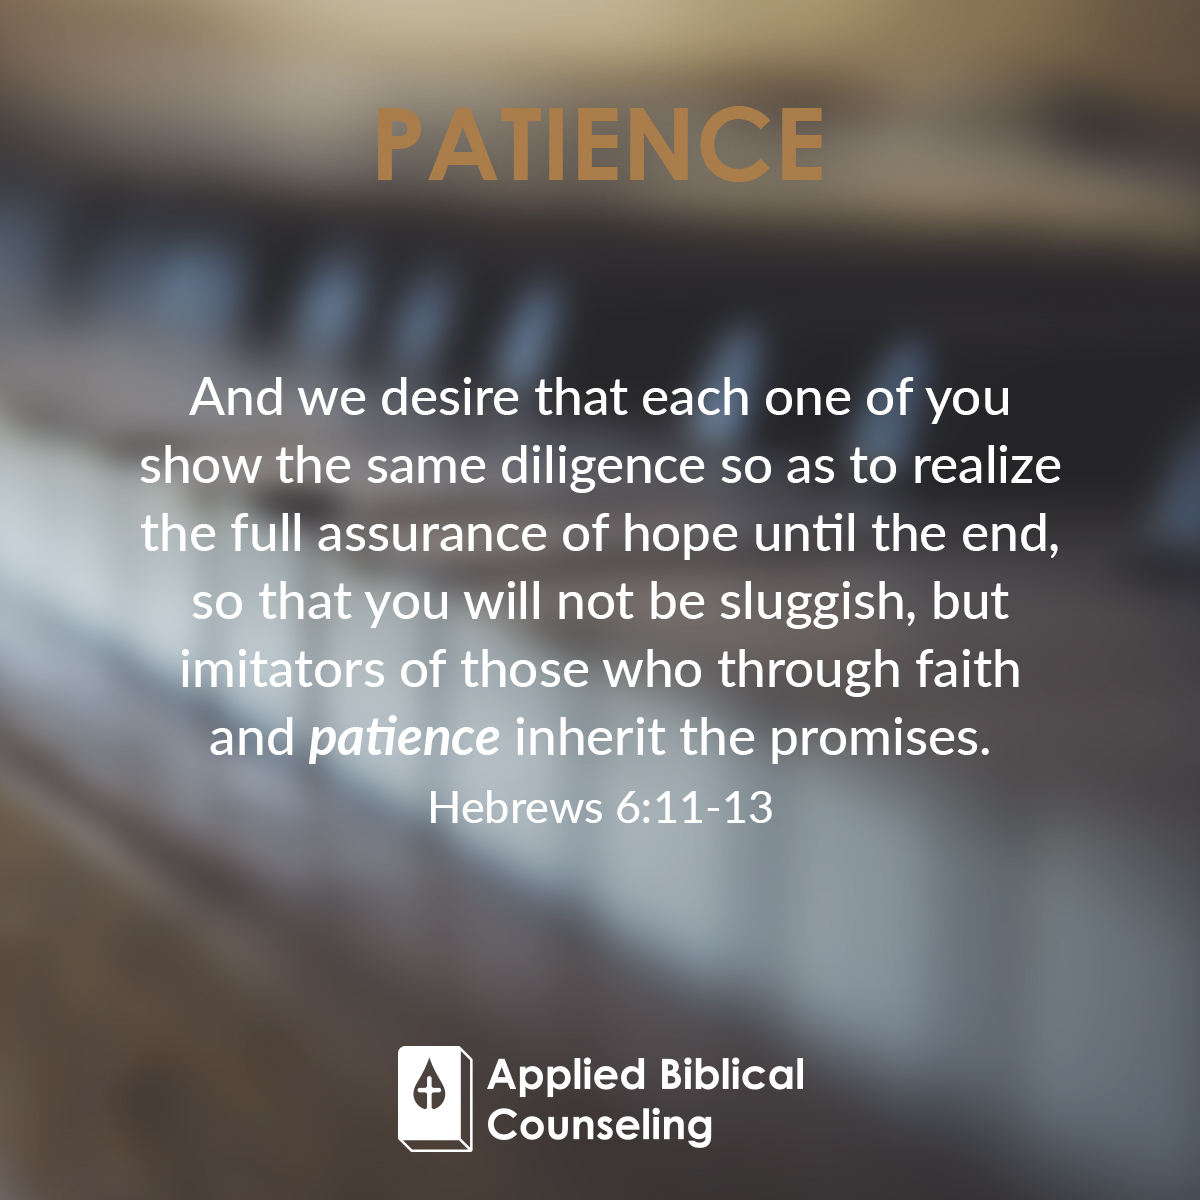 Applied Biblical Counseling Facebook w26 Patience 3